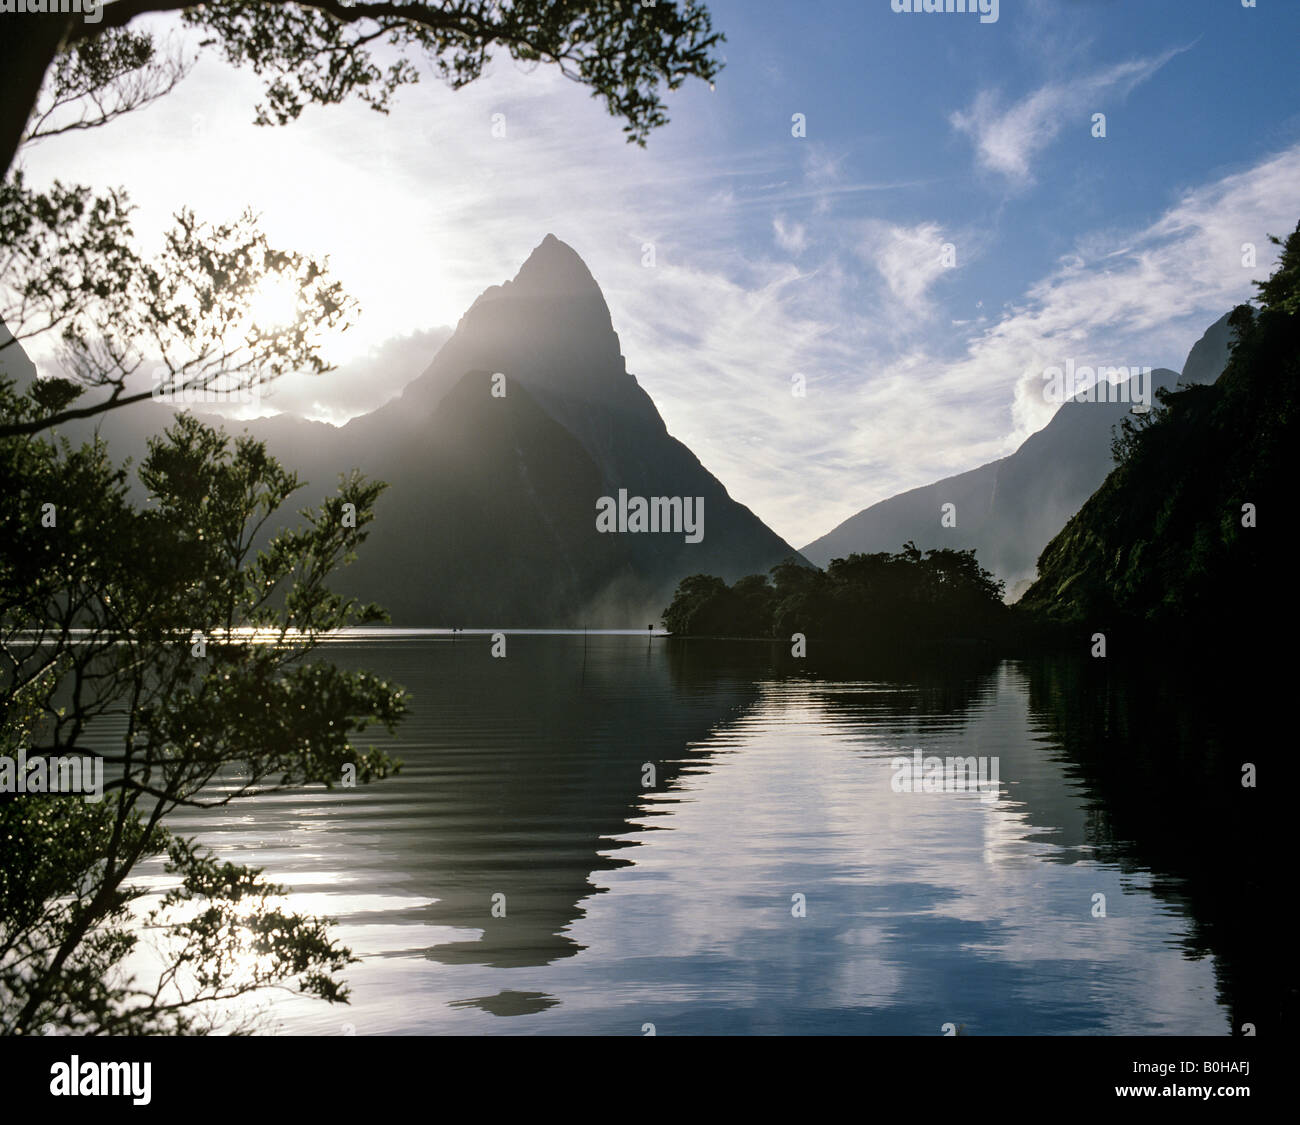 Mitre Peak, Milford Sound, fjord area, National Park, South Island, New Zealand - Stock Image